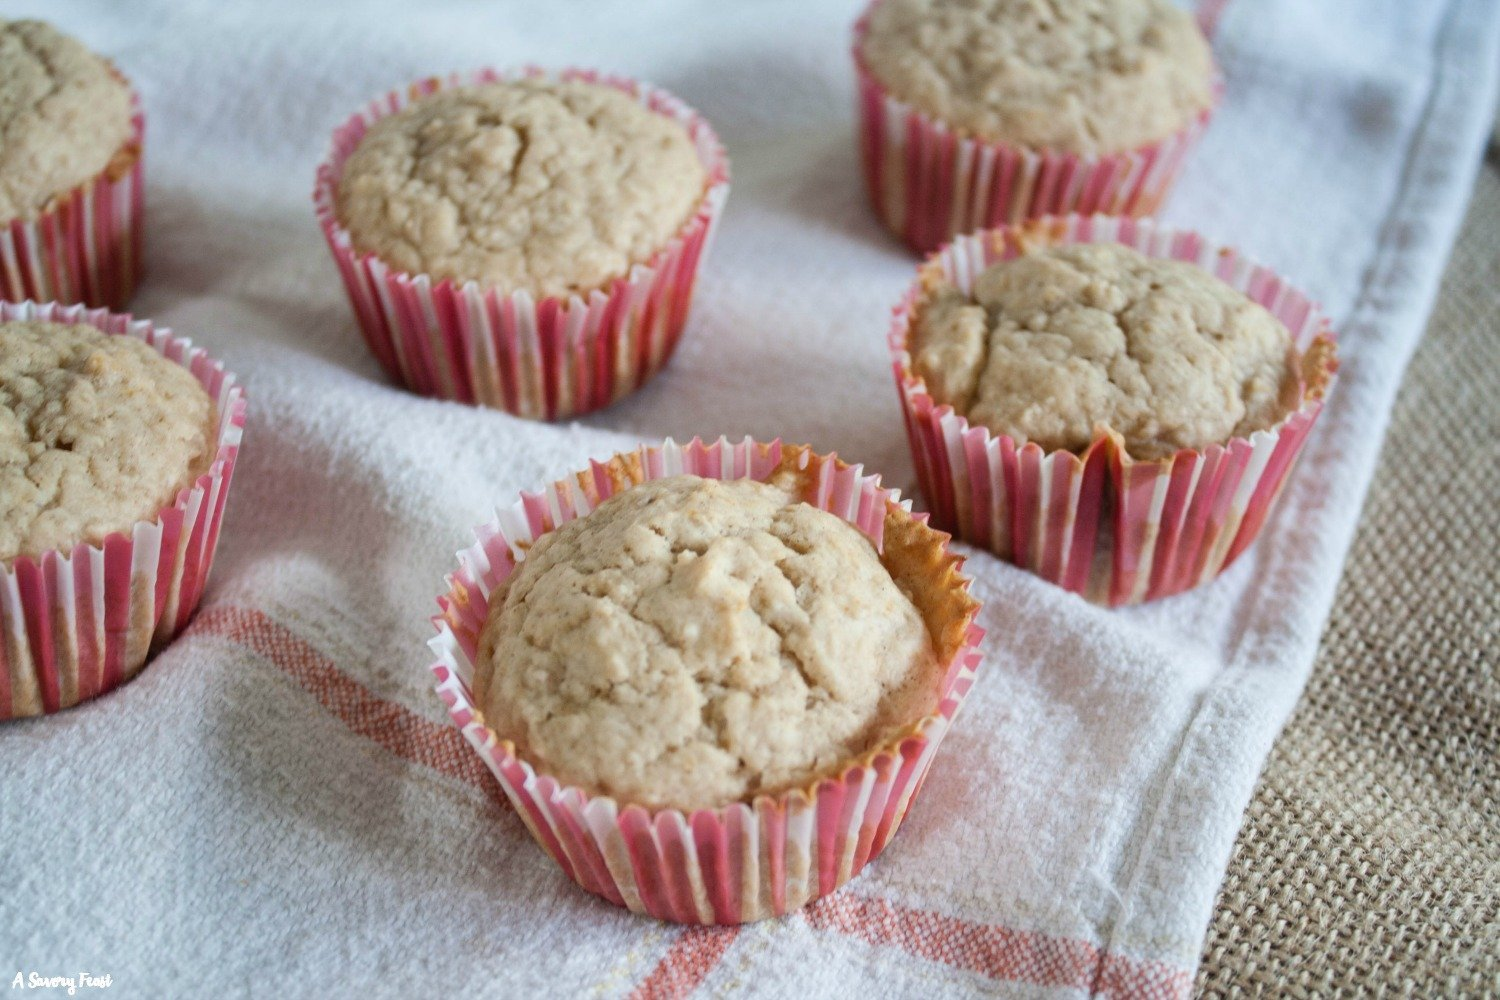 Not only are they easy to make, these One Bowl Applesauce Muffins are tasty, too!